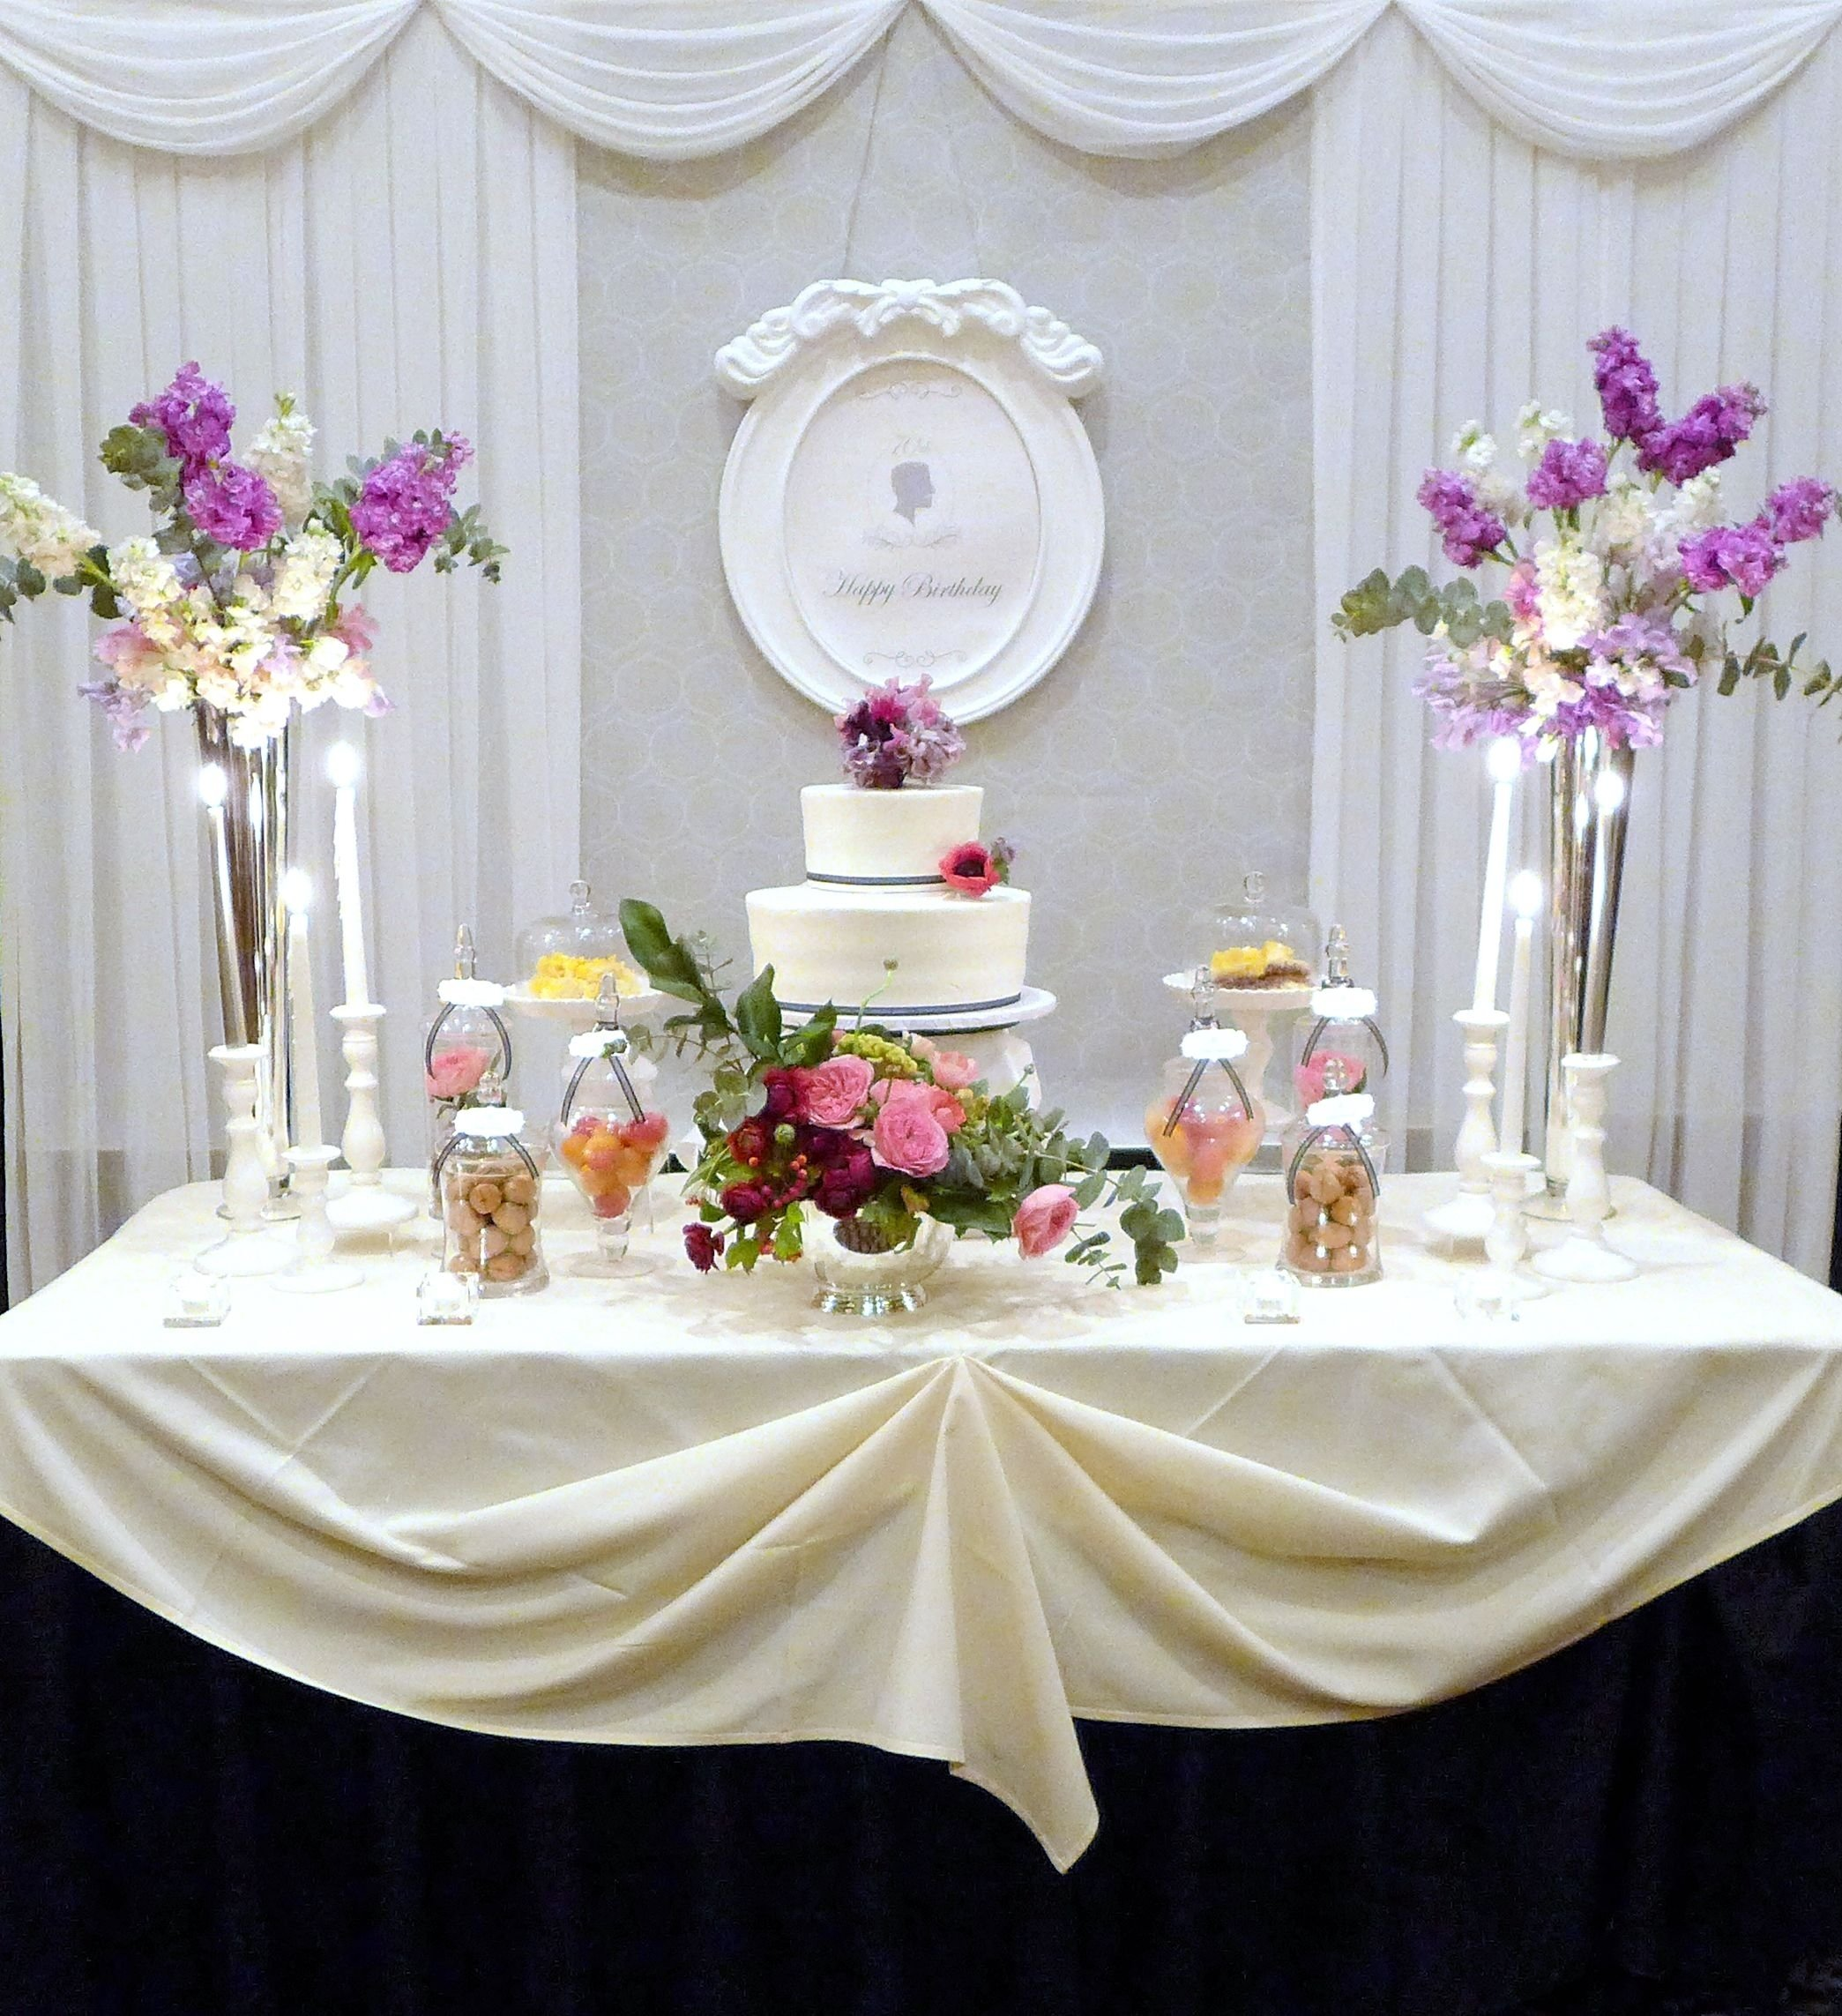 10 Nice Ideas For A 70Th Birthday Party